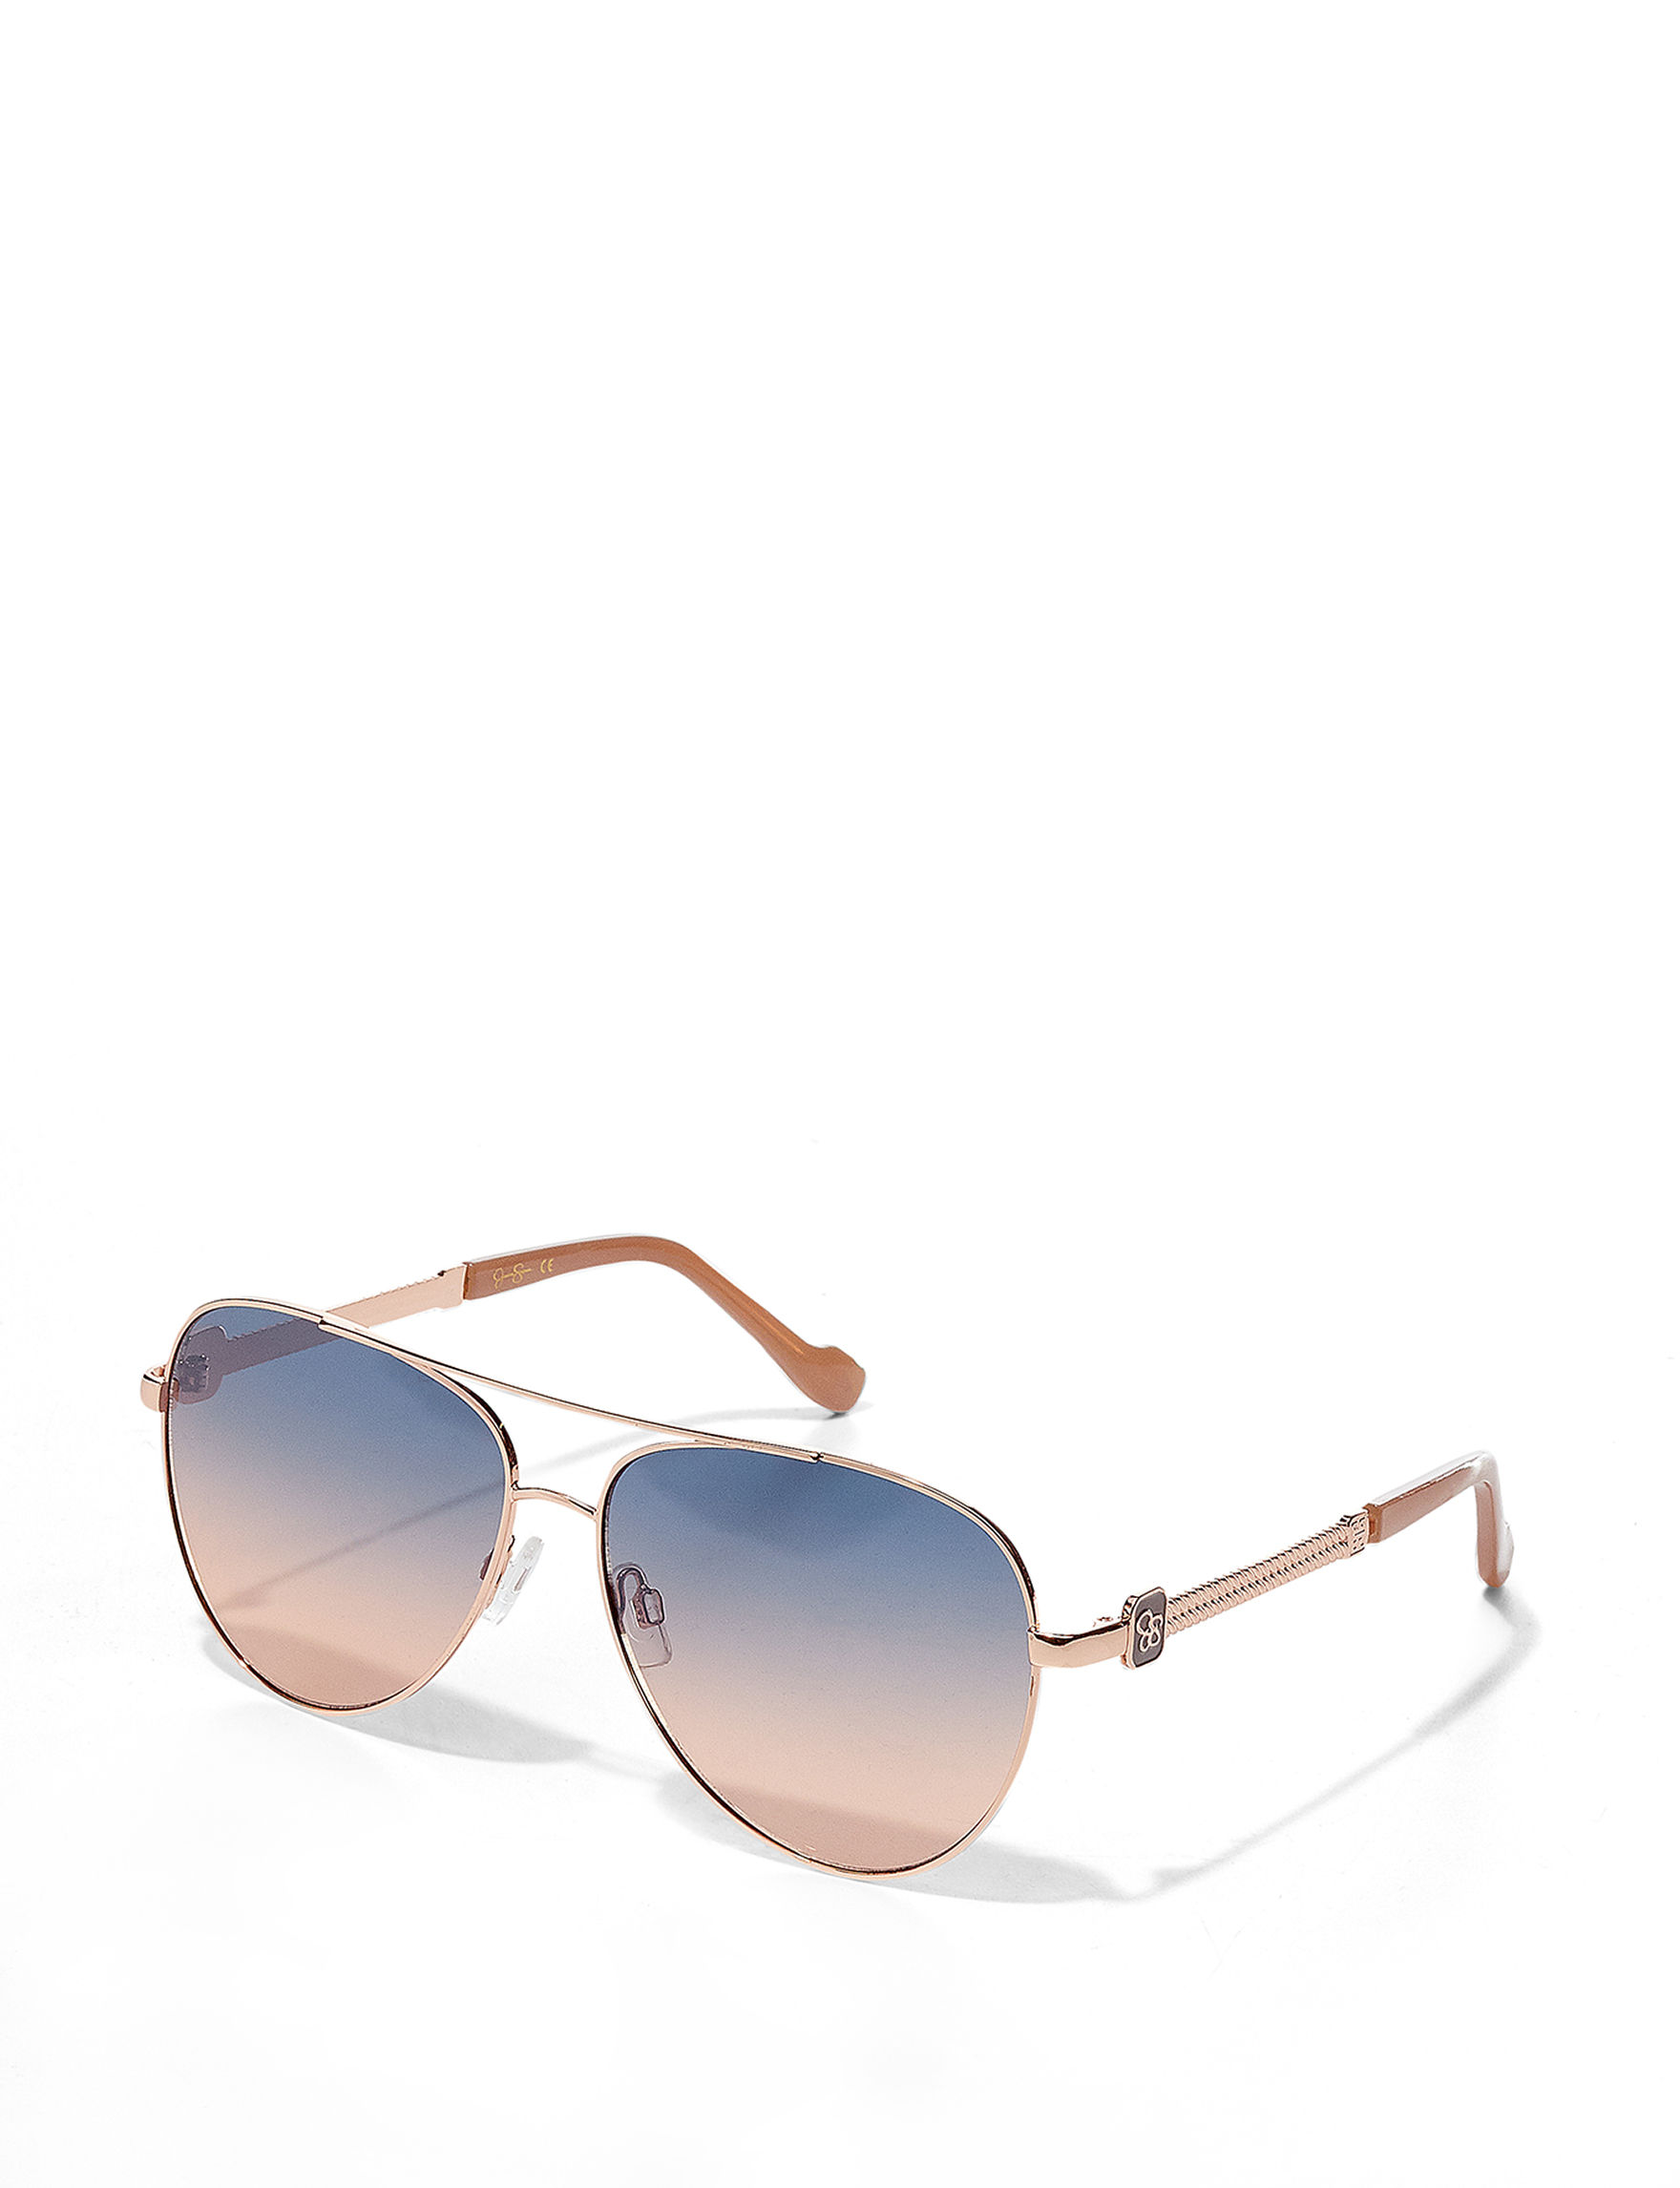 Jessica Simpson Rose Gold / Grey Aviator